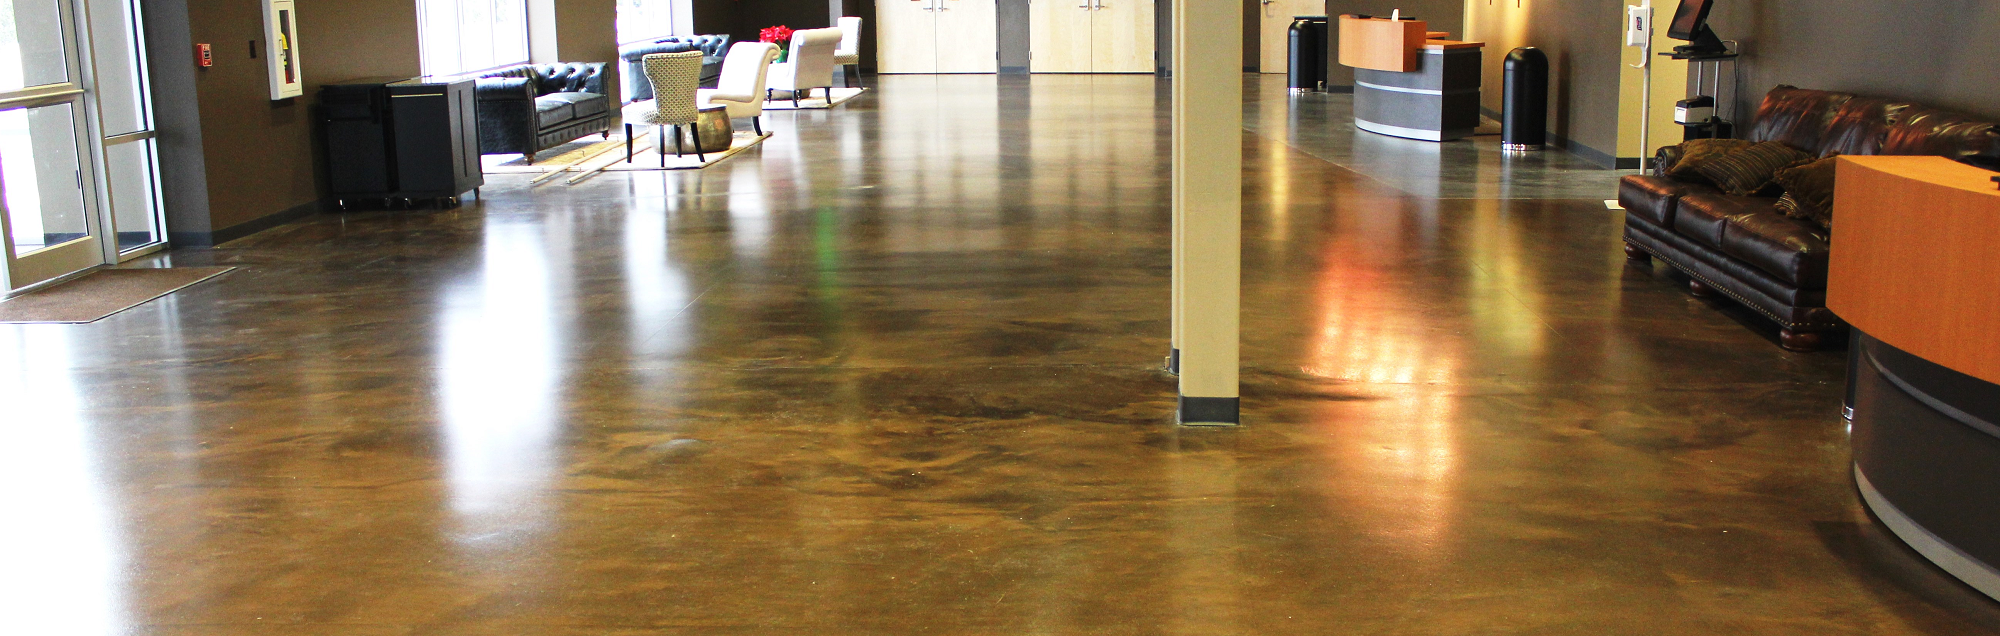 Decorative Concrete Flooring Contractor Eugene